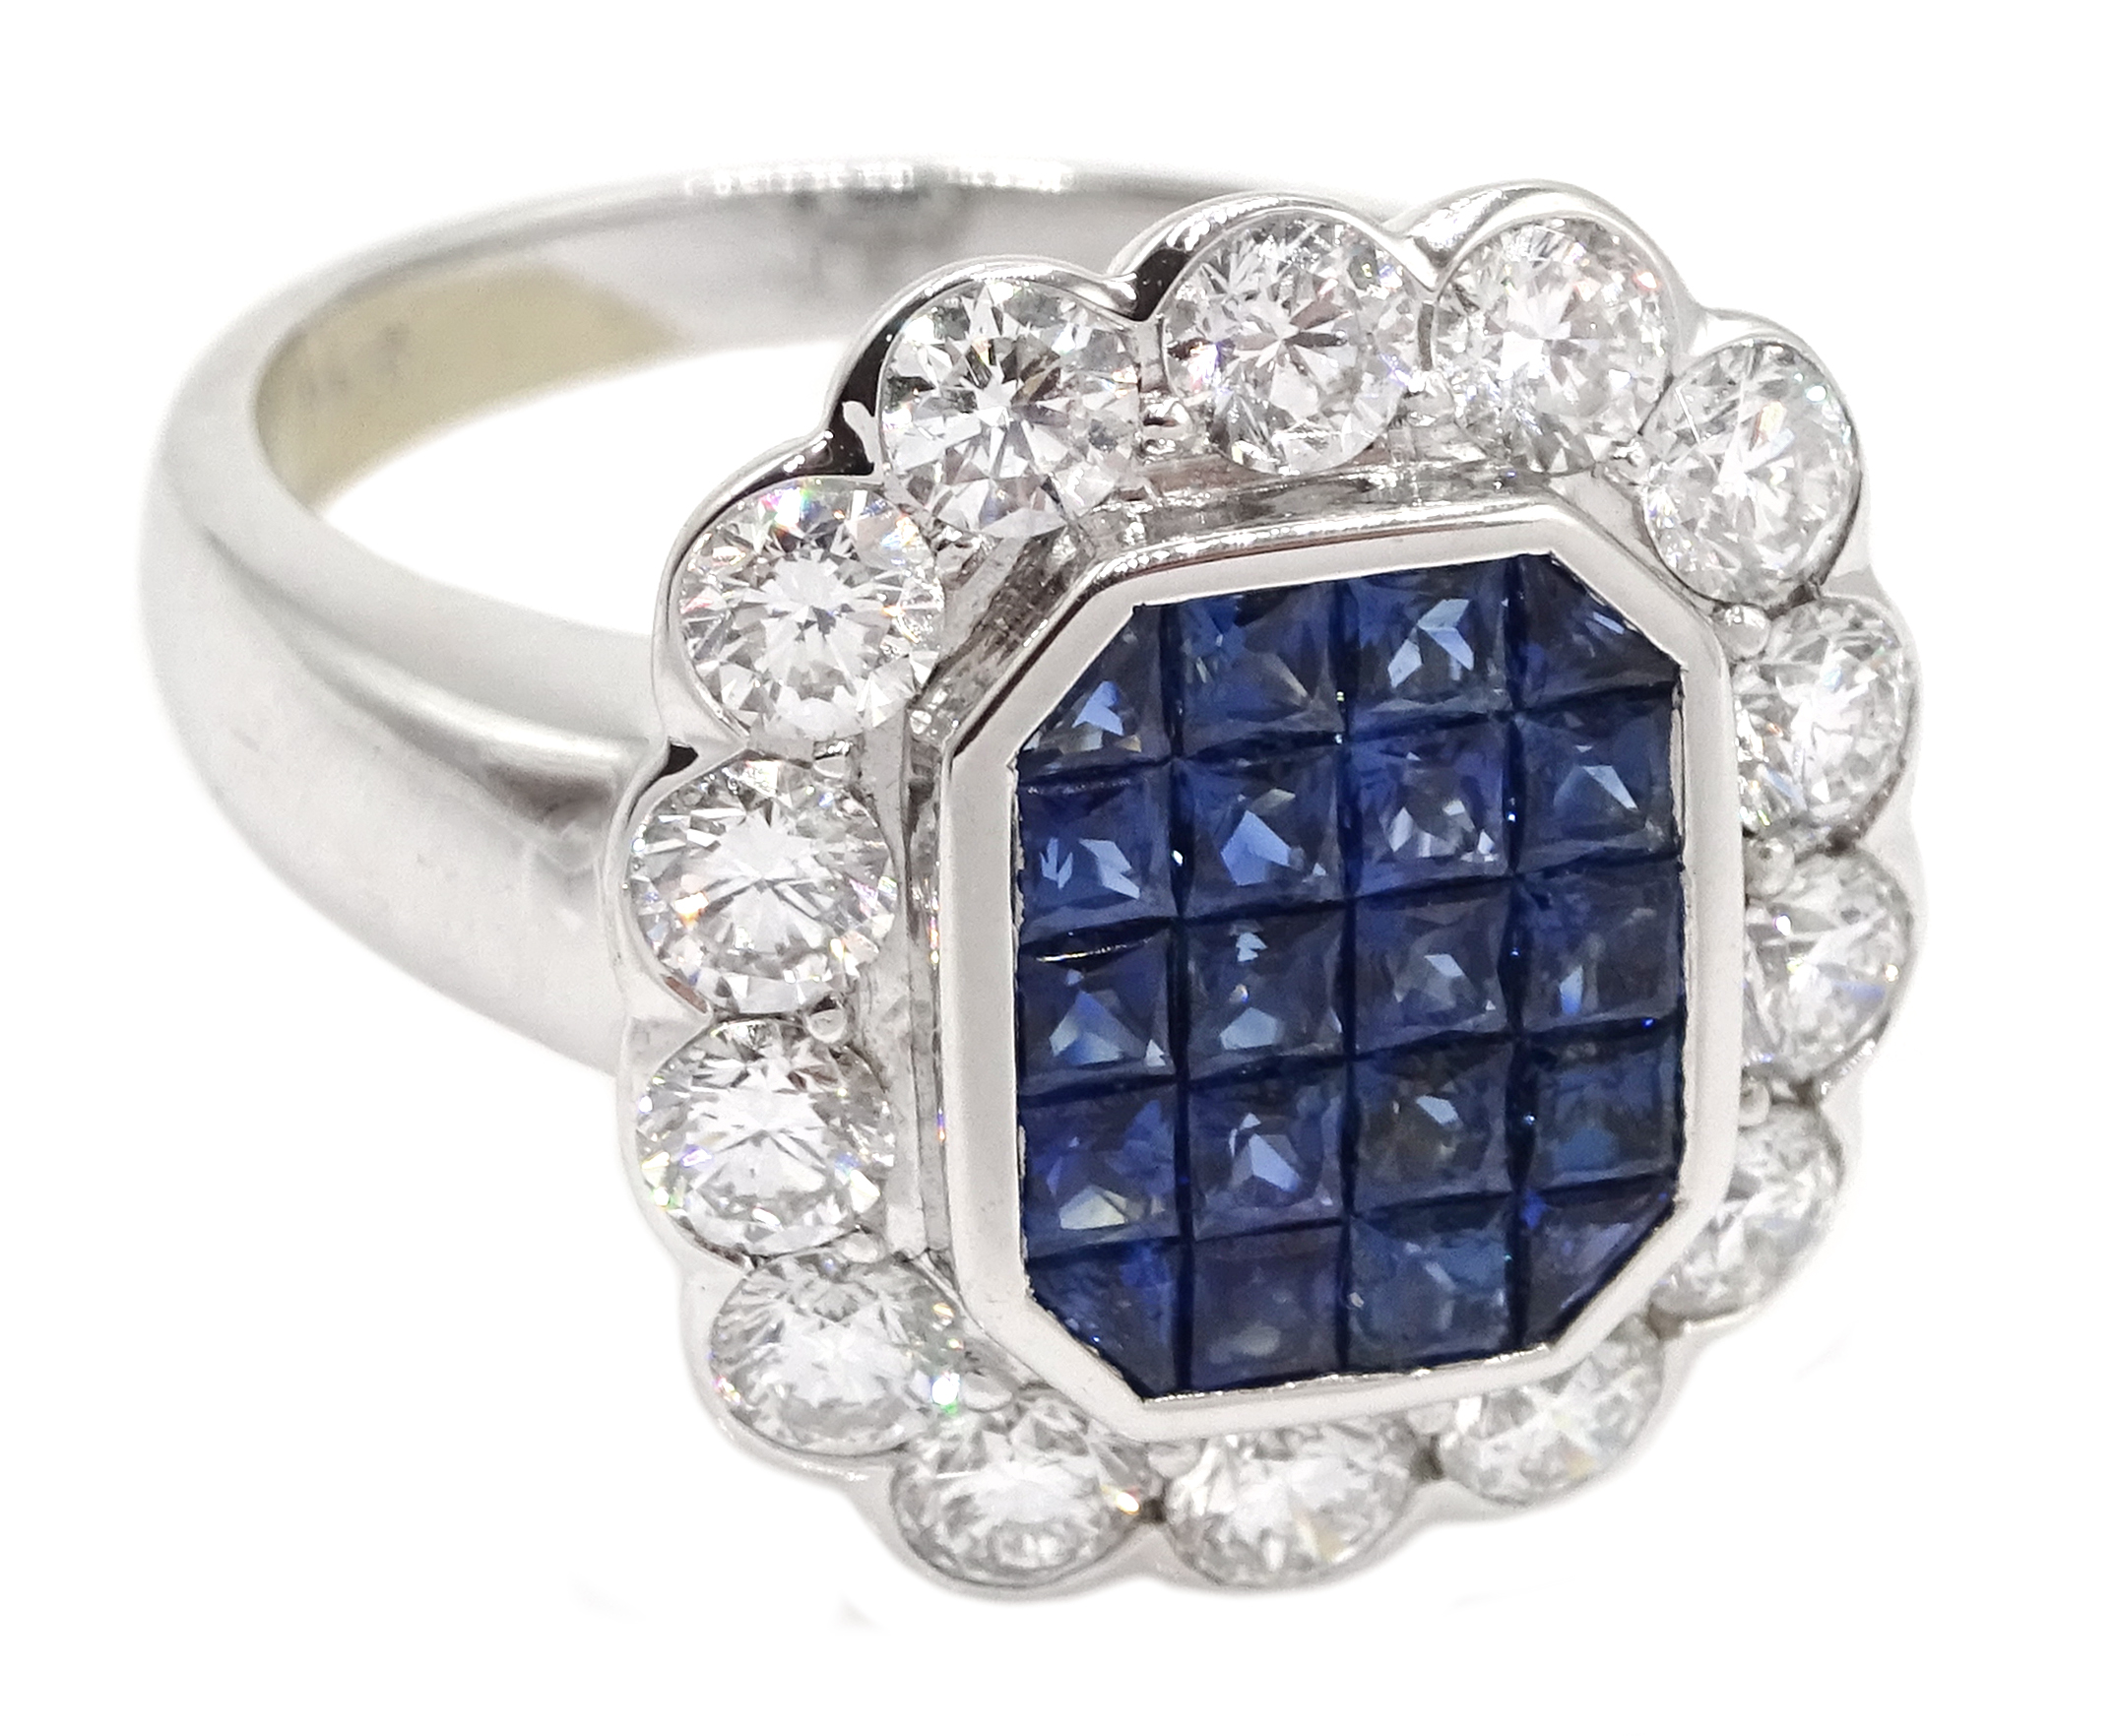 18ct white gold, sapphire and diamond cluster ring - Image 3 of 5